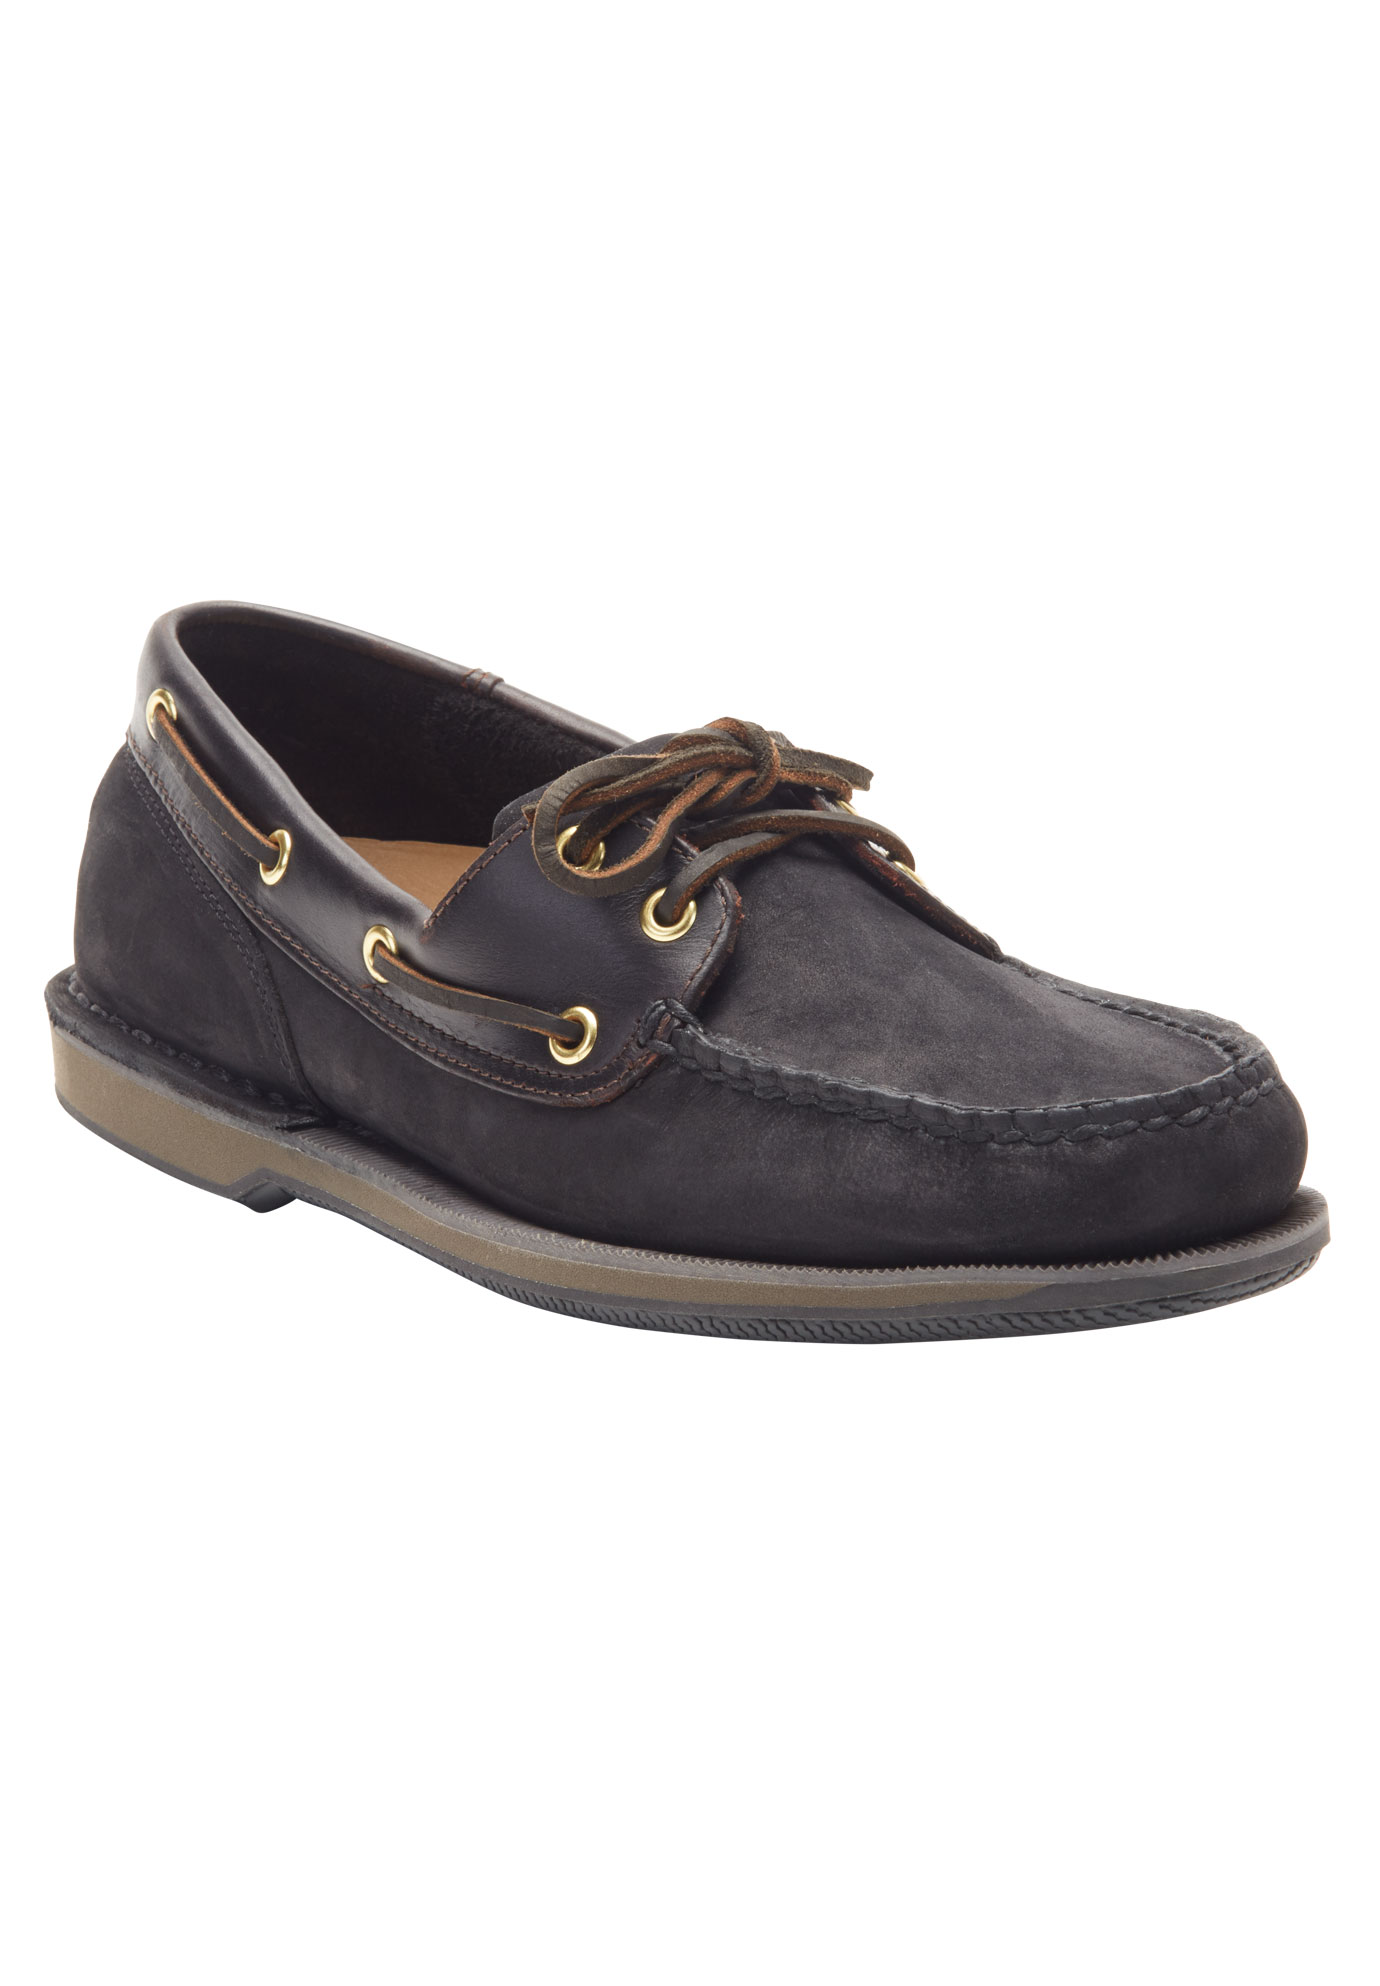 Perth Shoes Rockport Perth Boat Shoes Plus Size Casual Shoes King